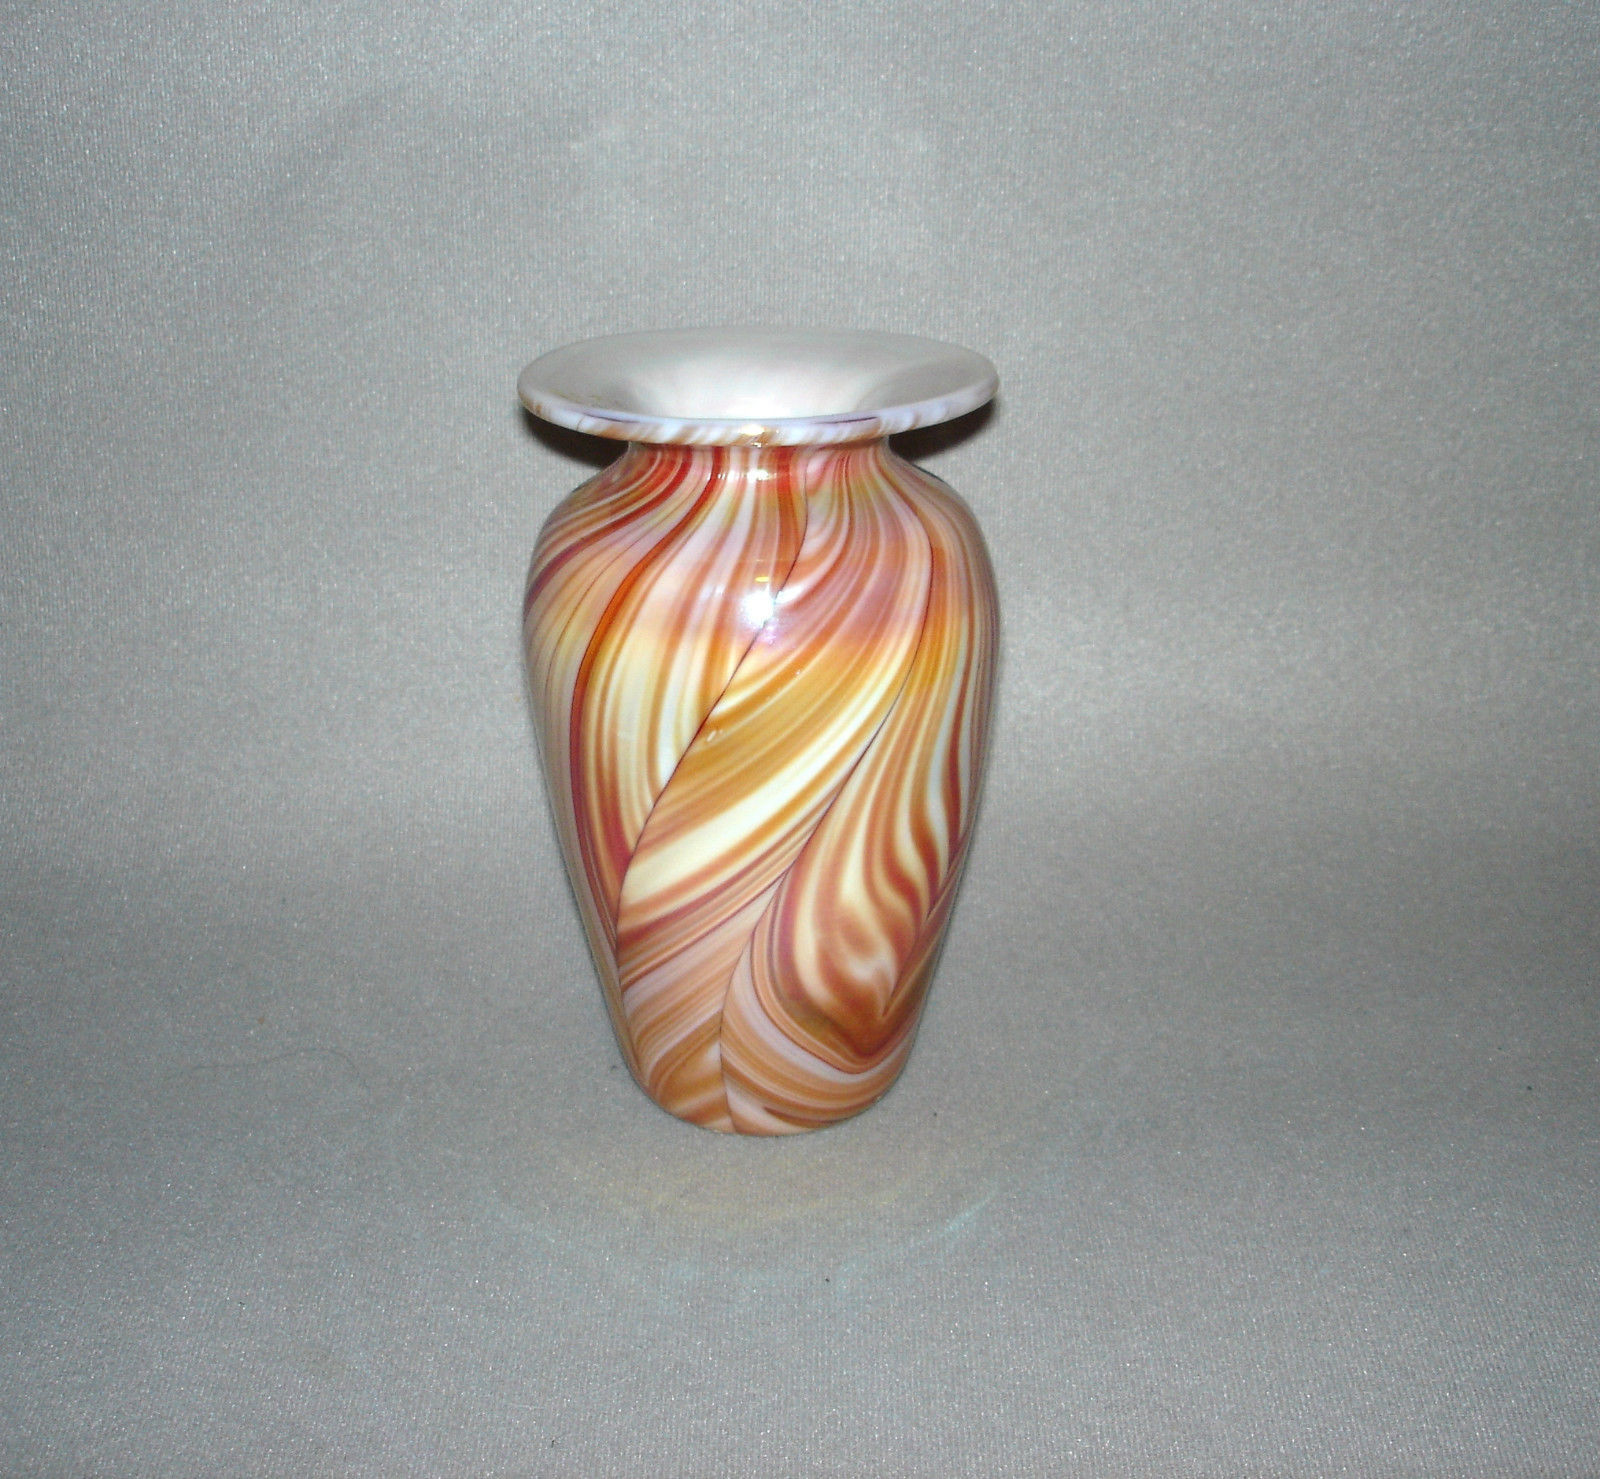 "Gibson Pulled Feather Art Glass Vase Hand Blown 7"" - $295.00"